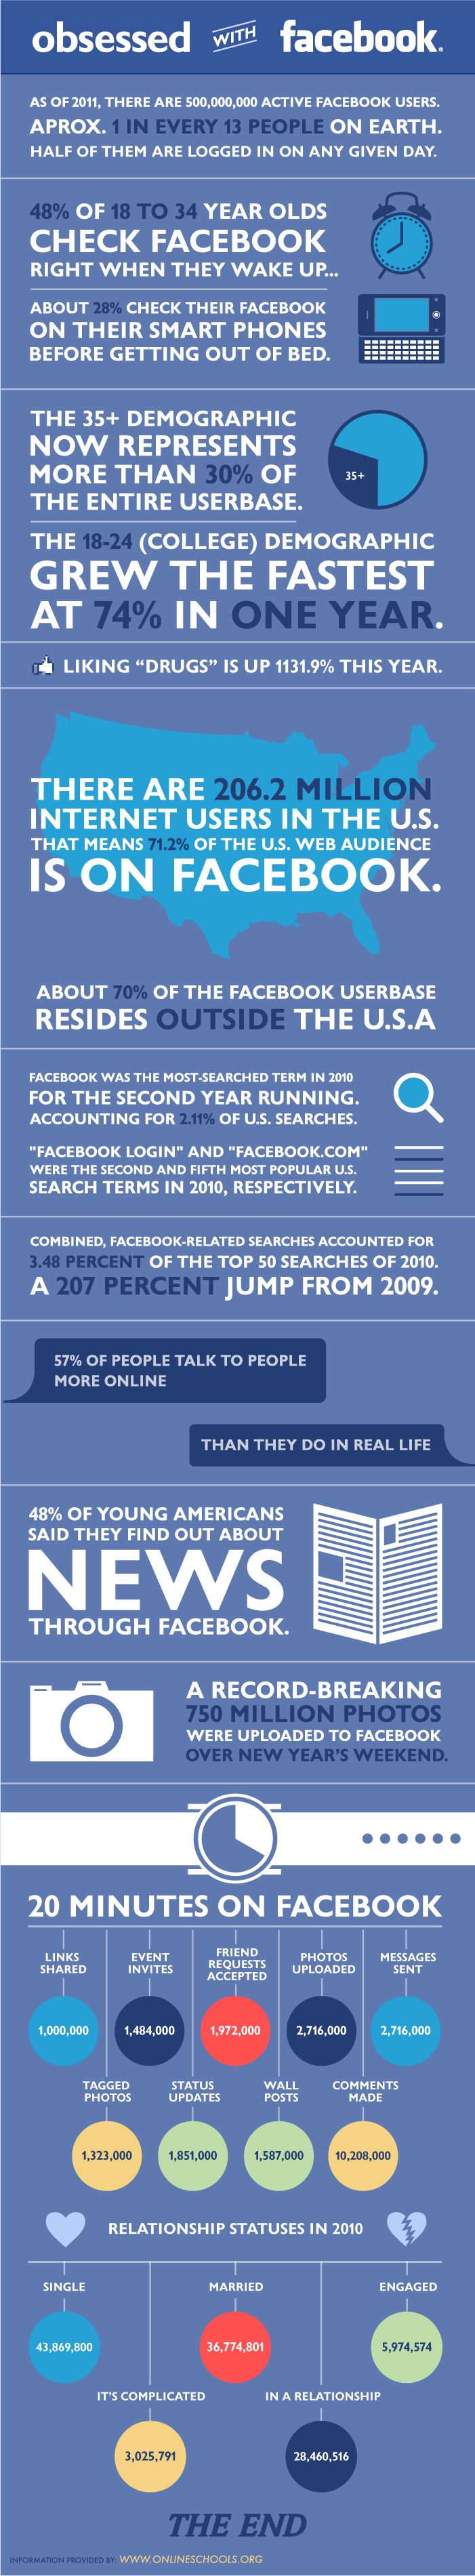 Are We Obsessed with Facebook?